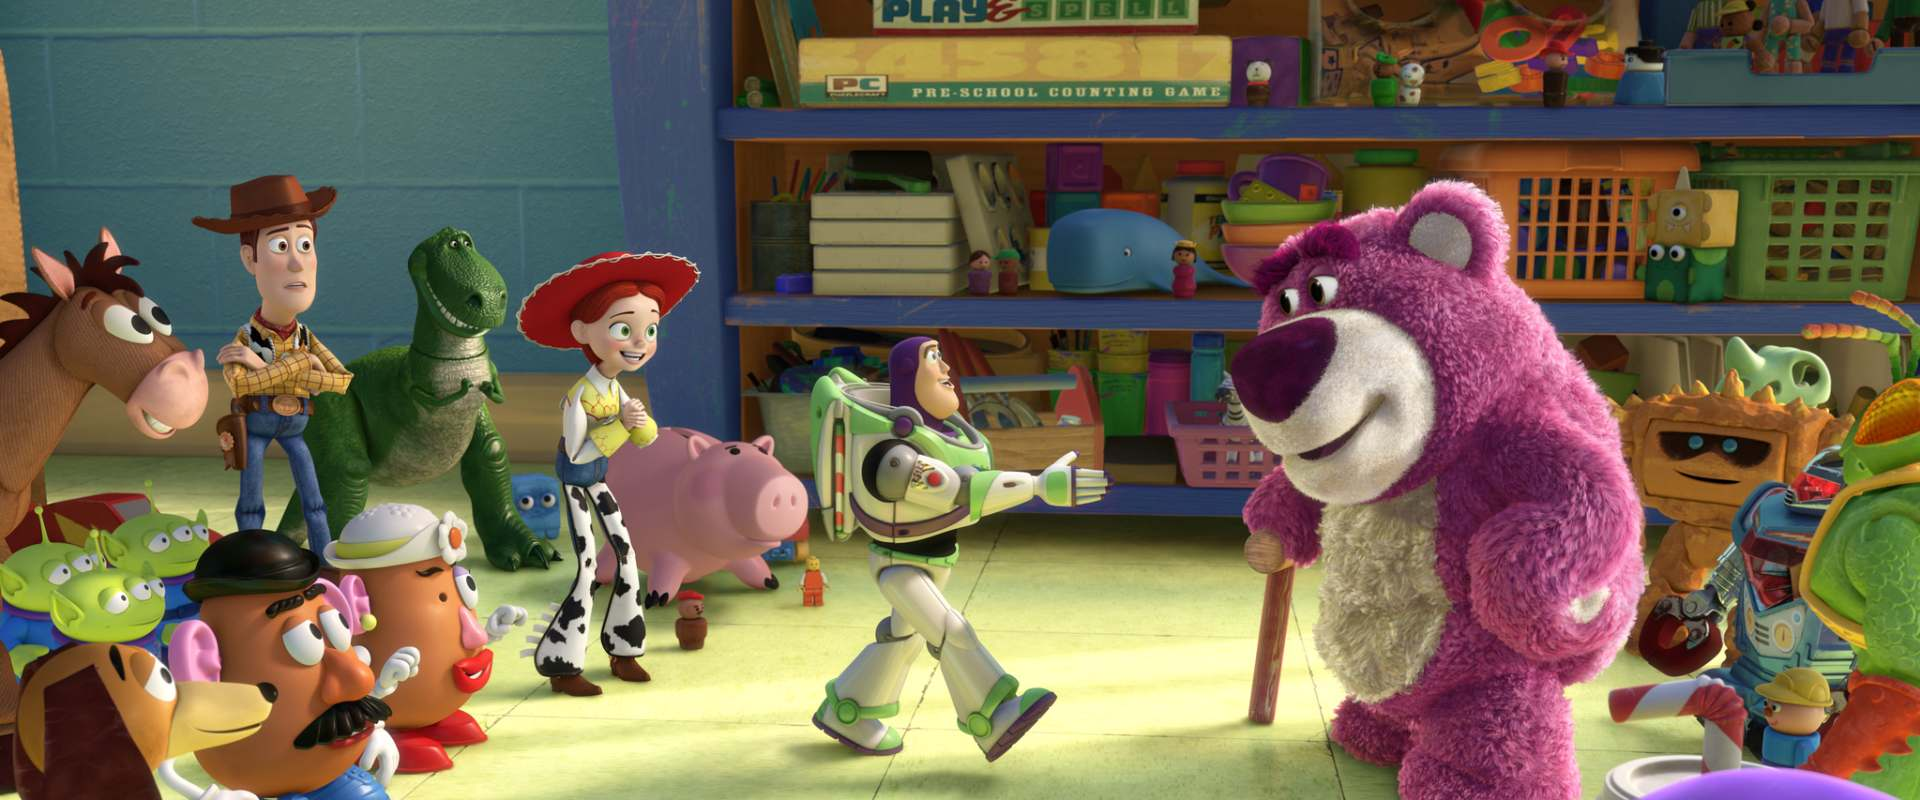 Toy Story 3 background 1